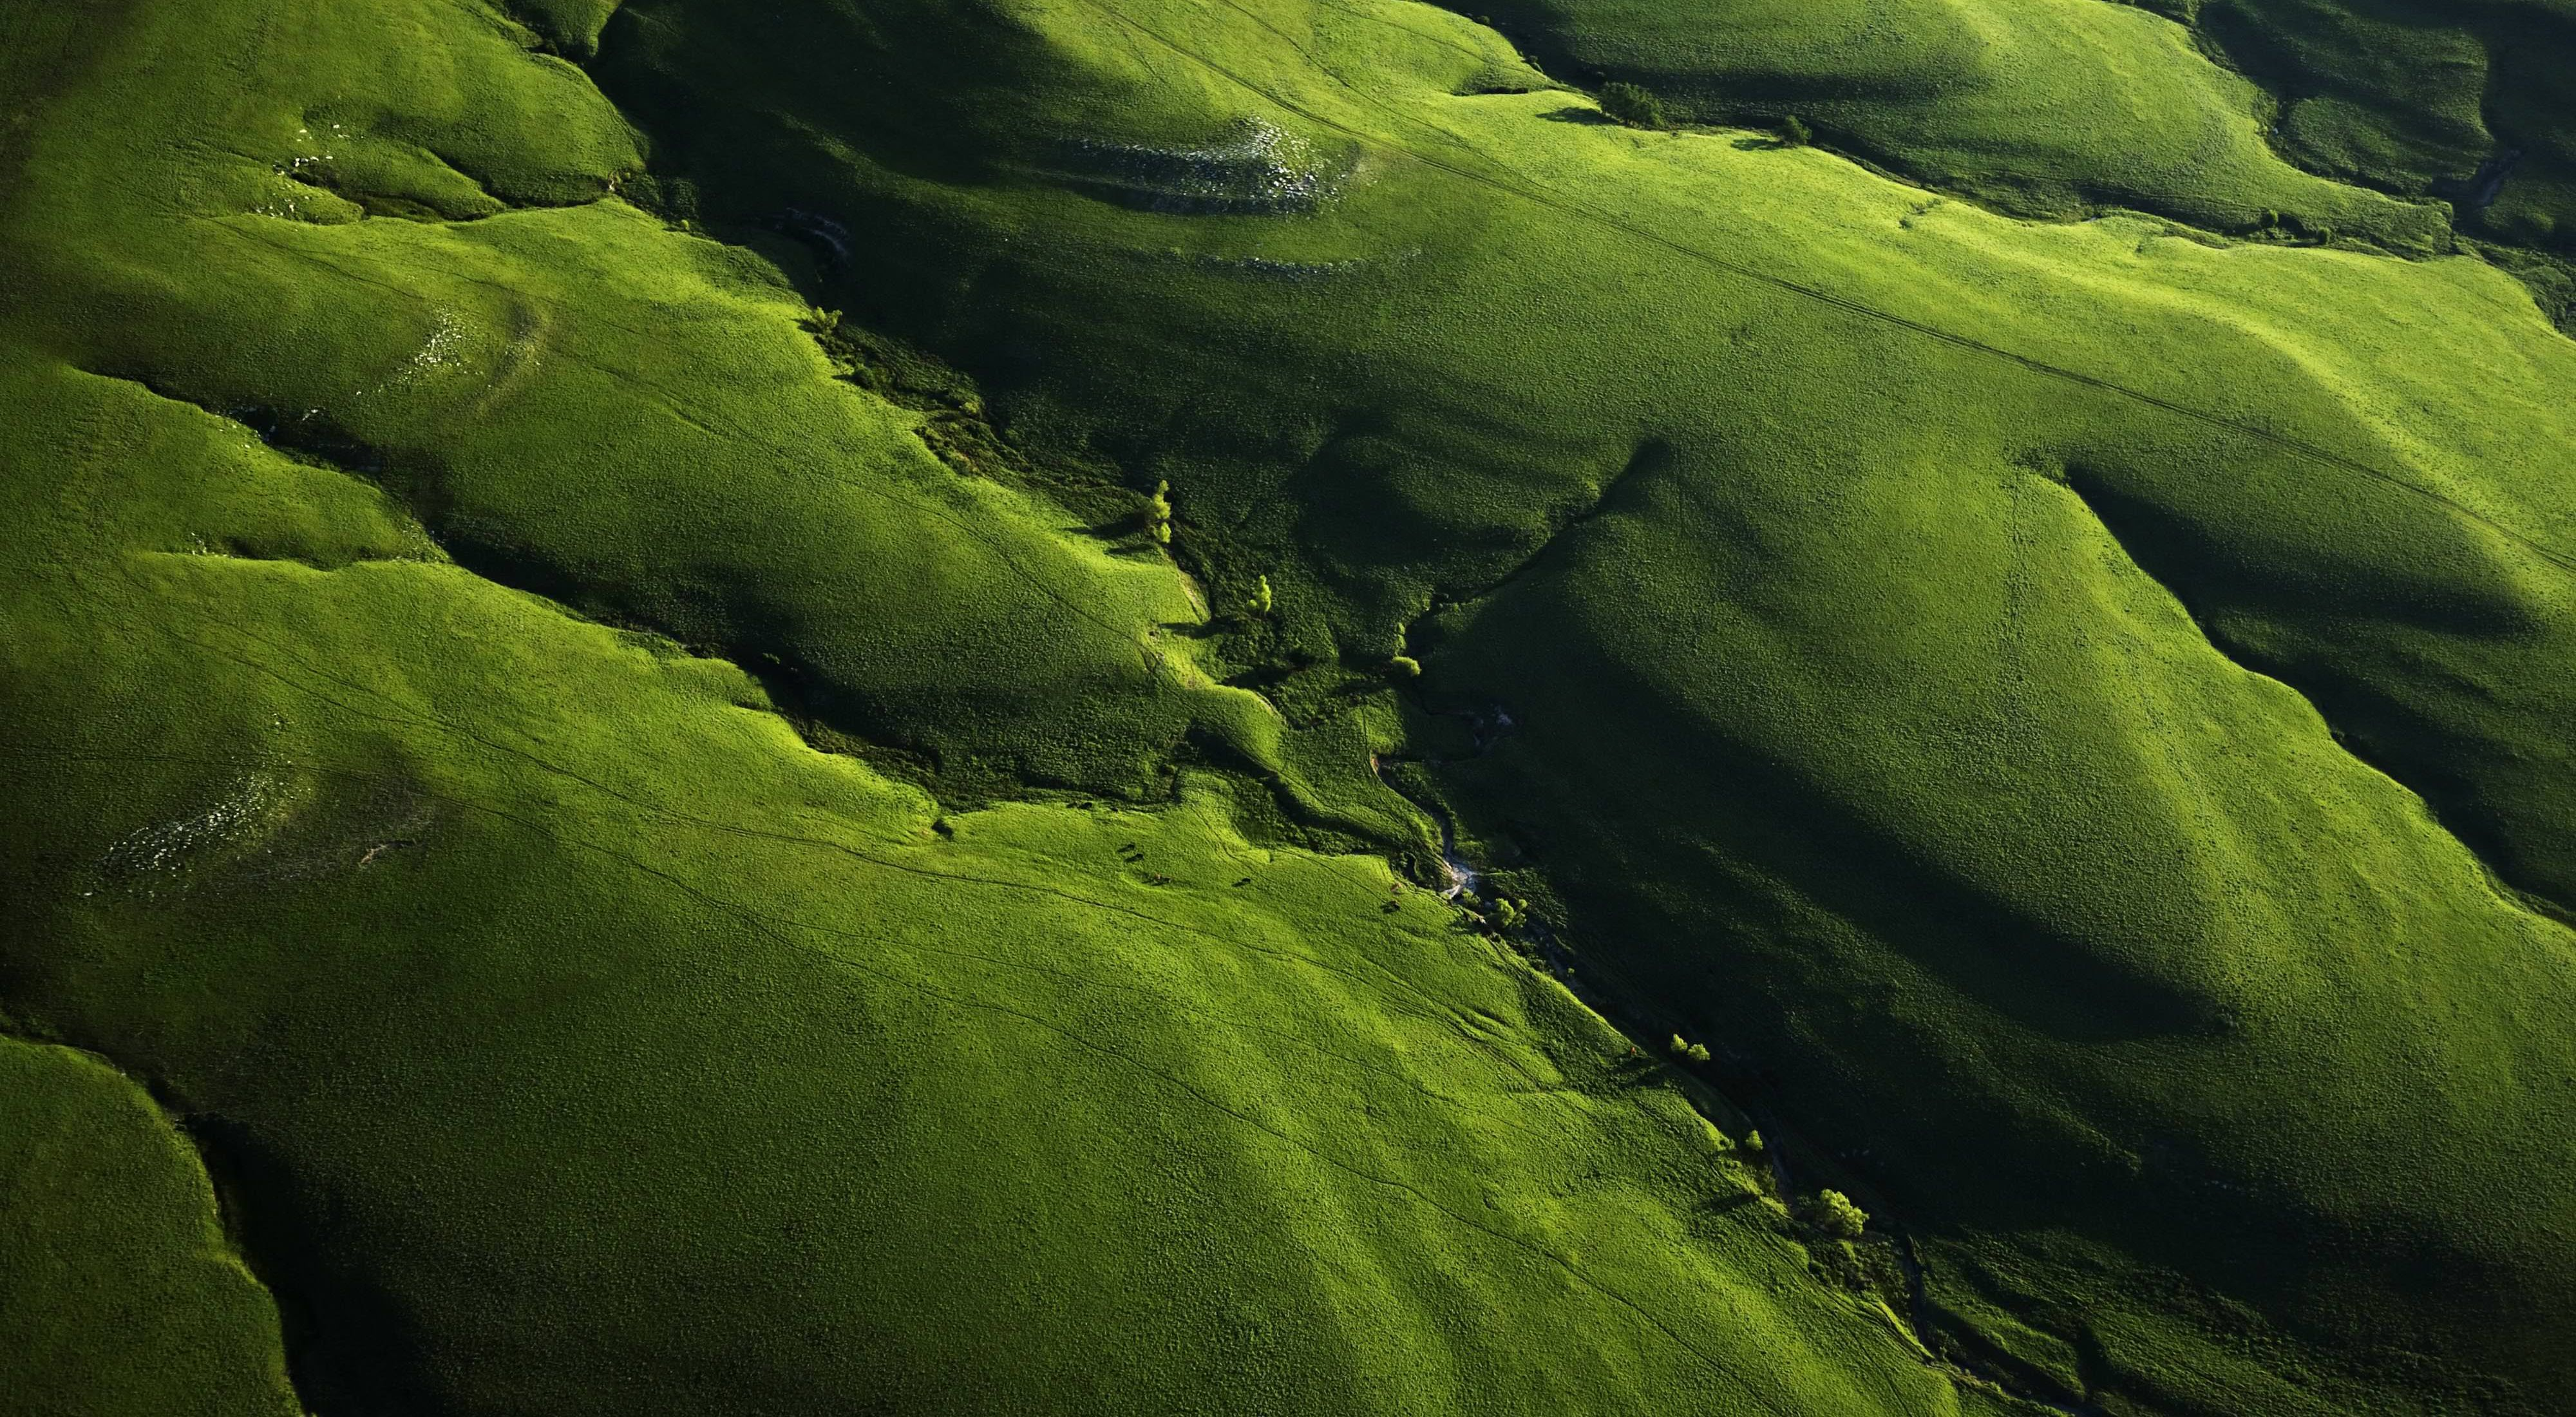 Aerial view of vibrant green hills